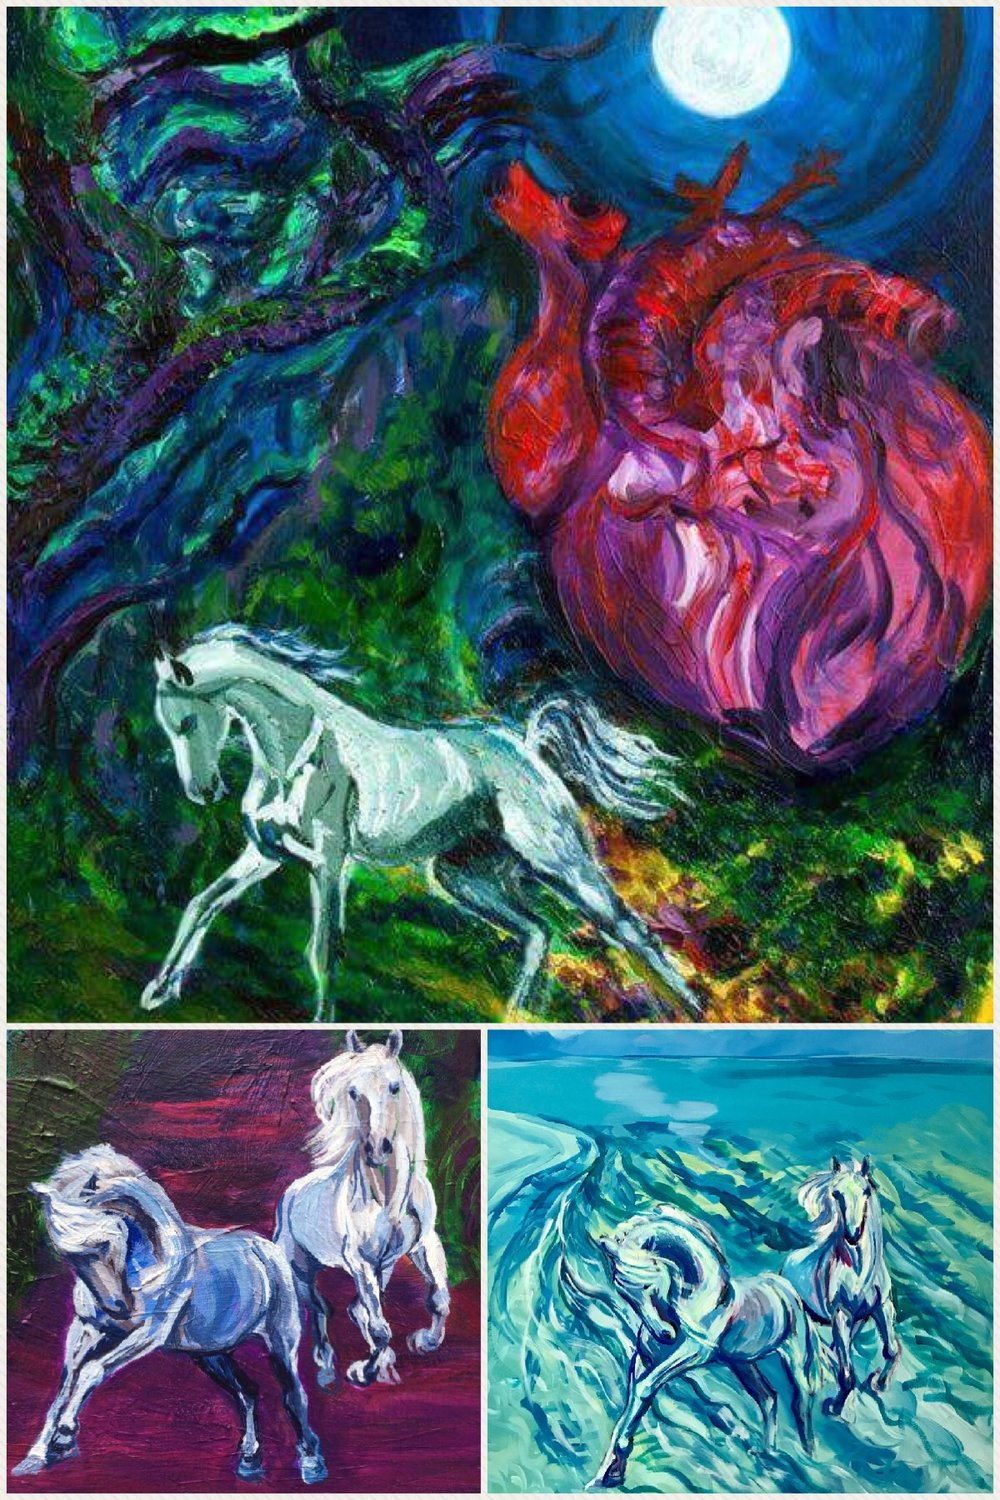 'Messenger Of Heart And Moon' (top). White Horse Messengers Returning' (left). 'Kicking Our Heels Up' (right)